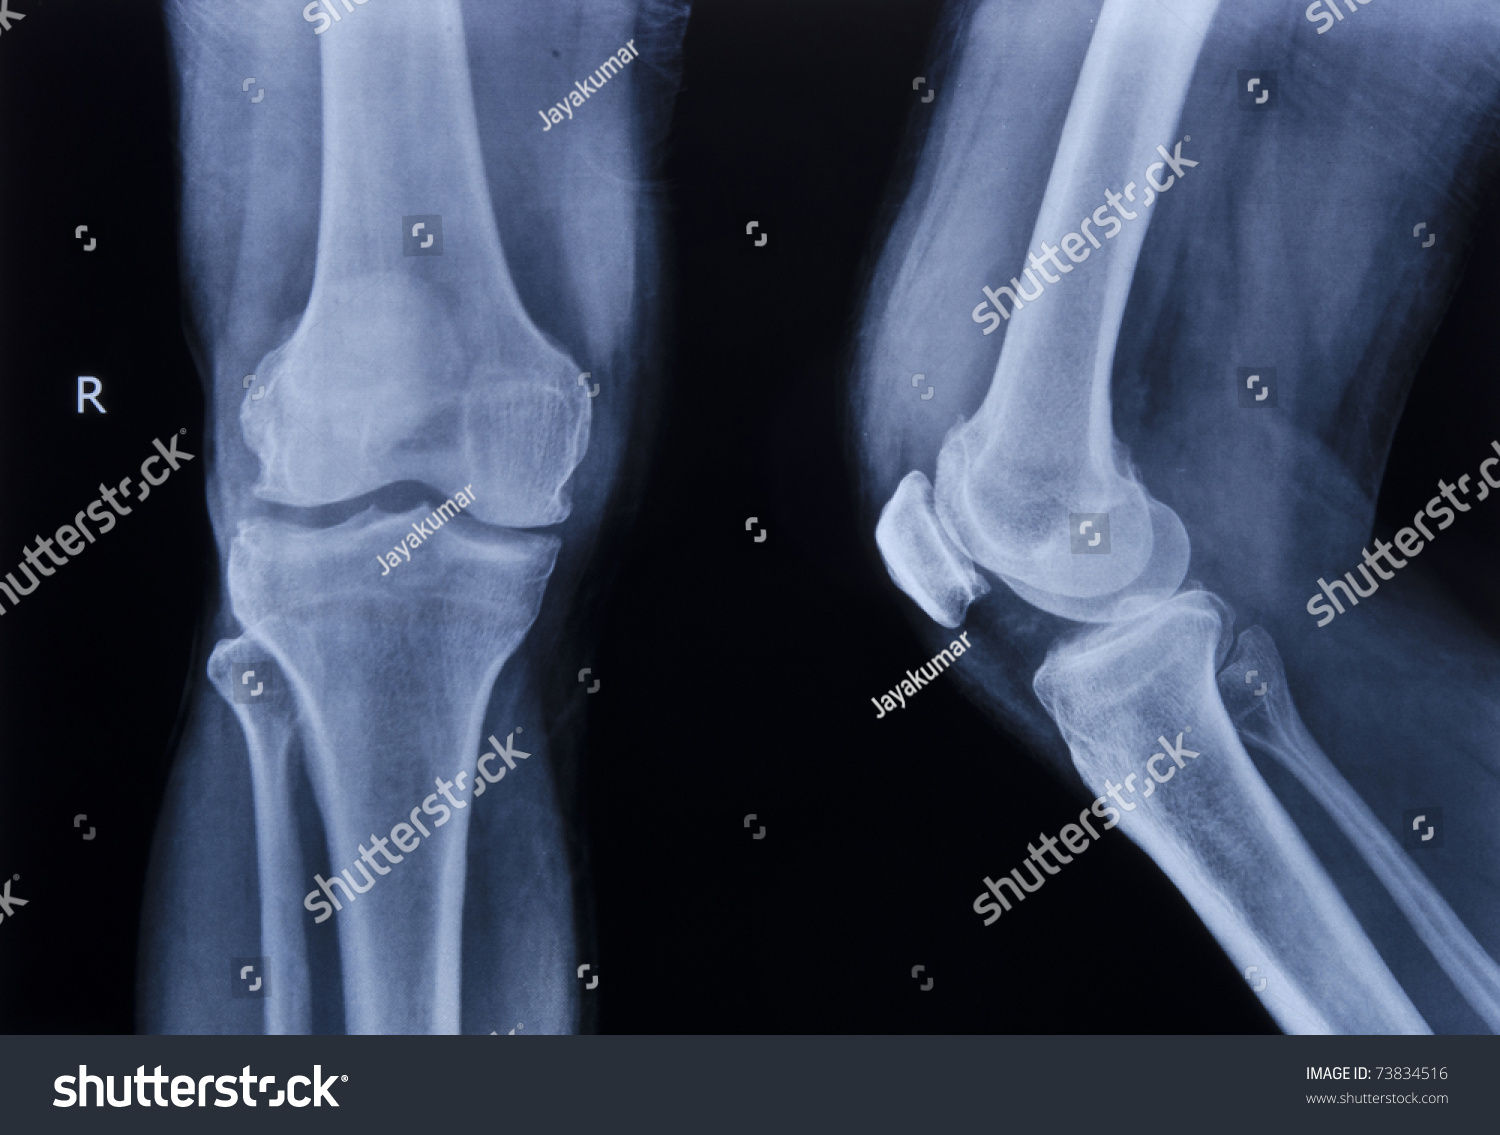 Collection Xray Normal Knee Stock Photo 73834516 - Shutterstock